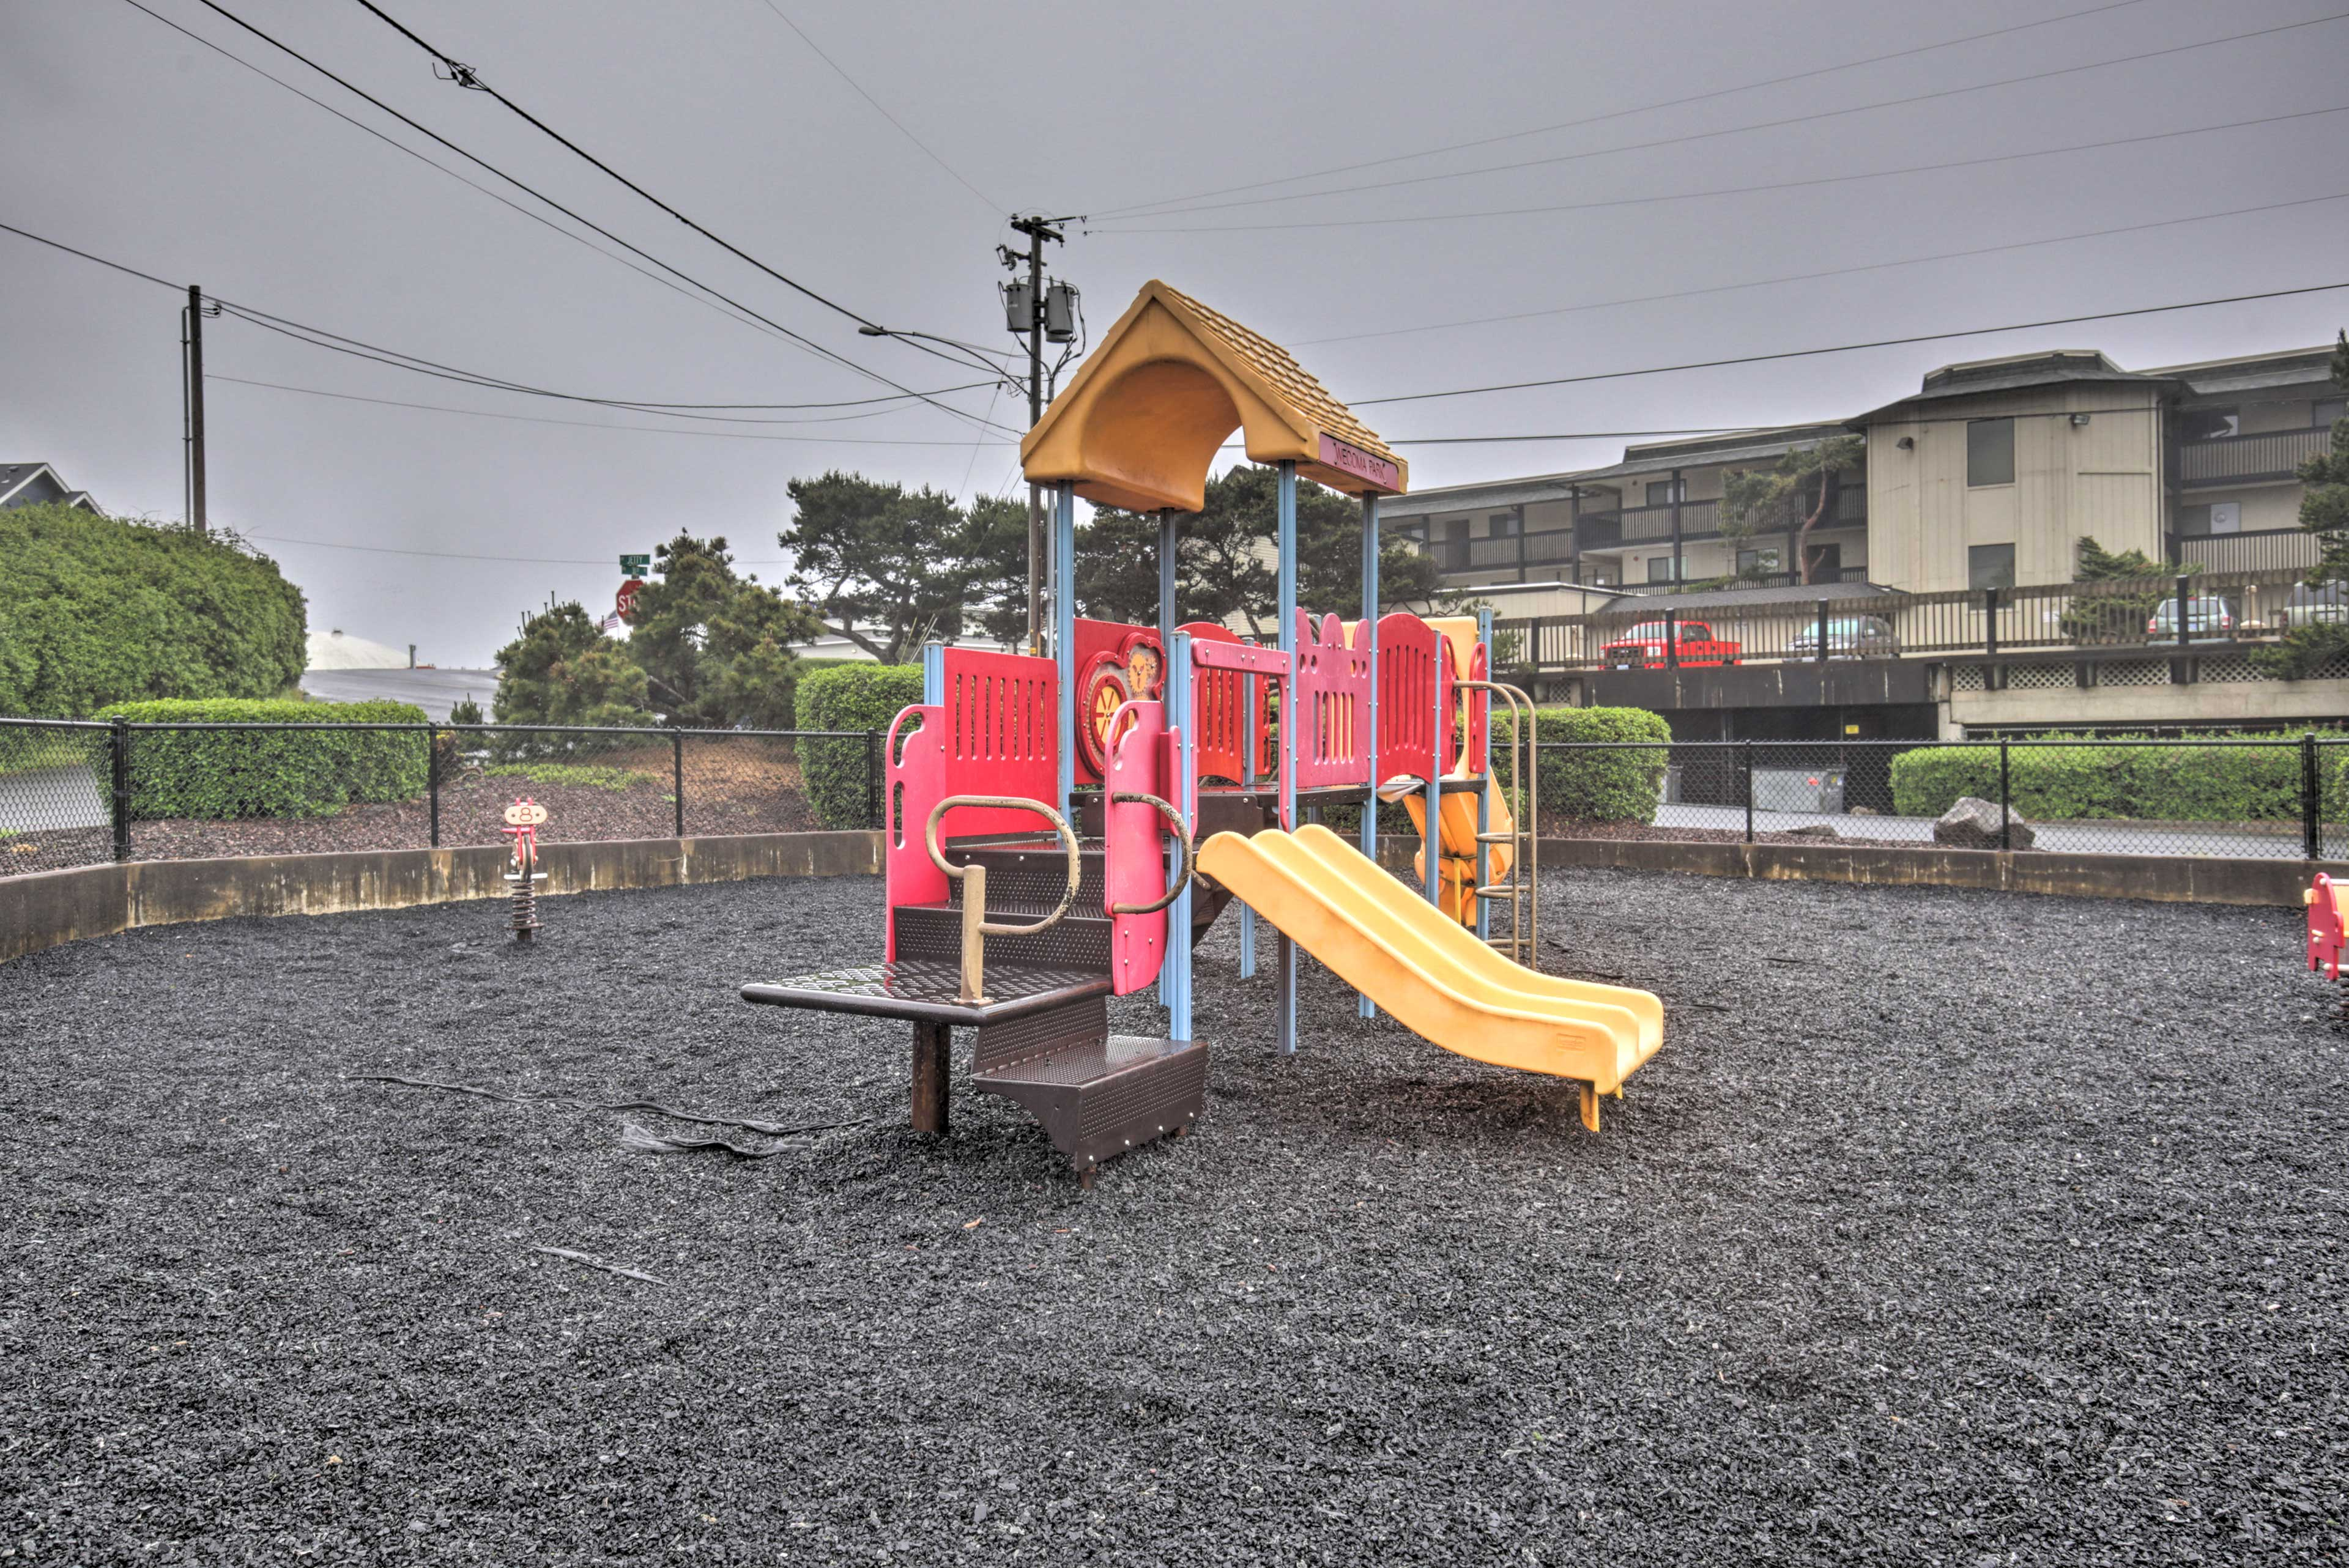 Kids will love monkeying around on the playground at the nearby park!